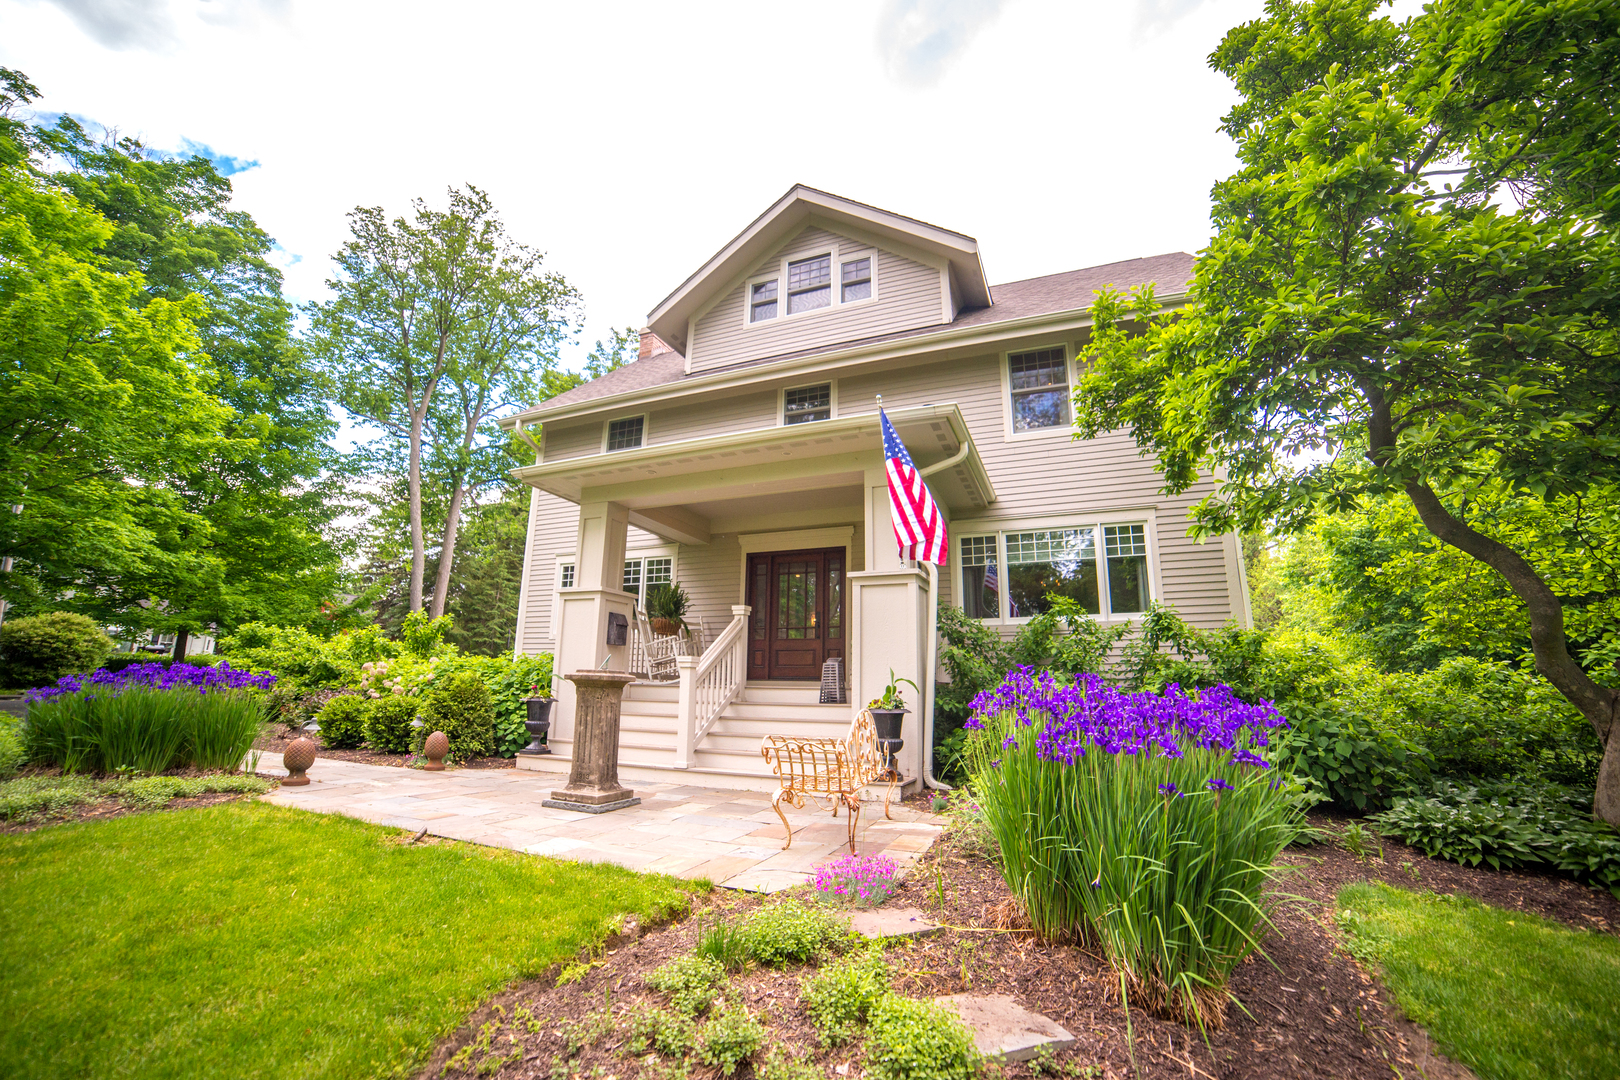 Property for sale at 352 West Woodstock Street, Crystal Lake,  IL 60014